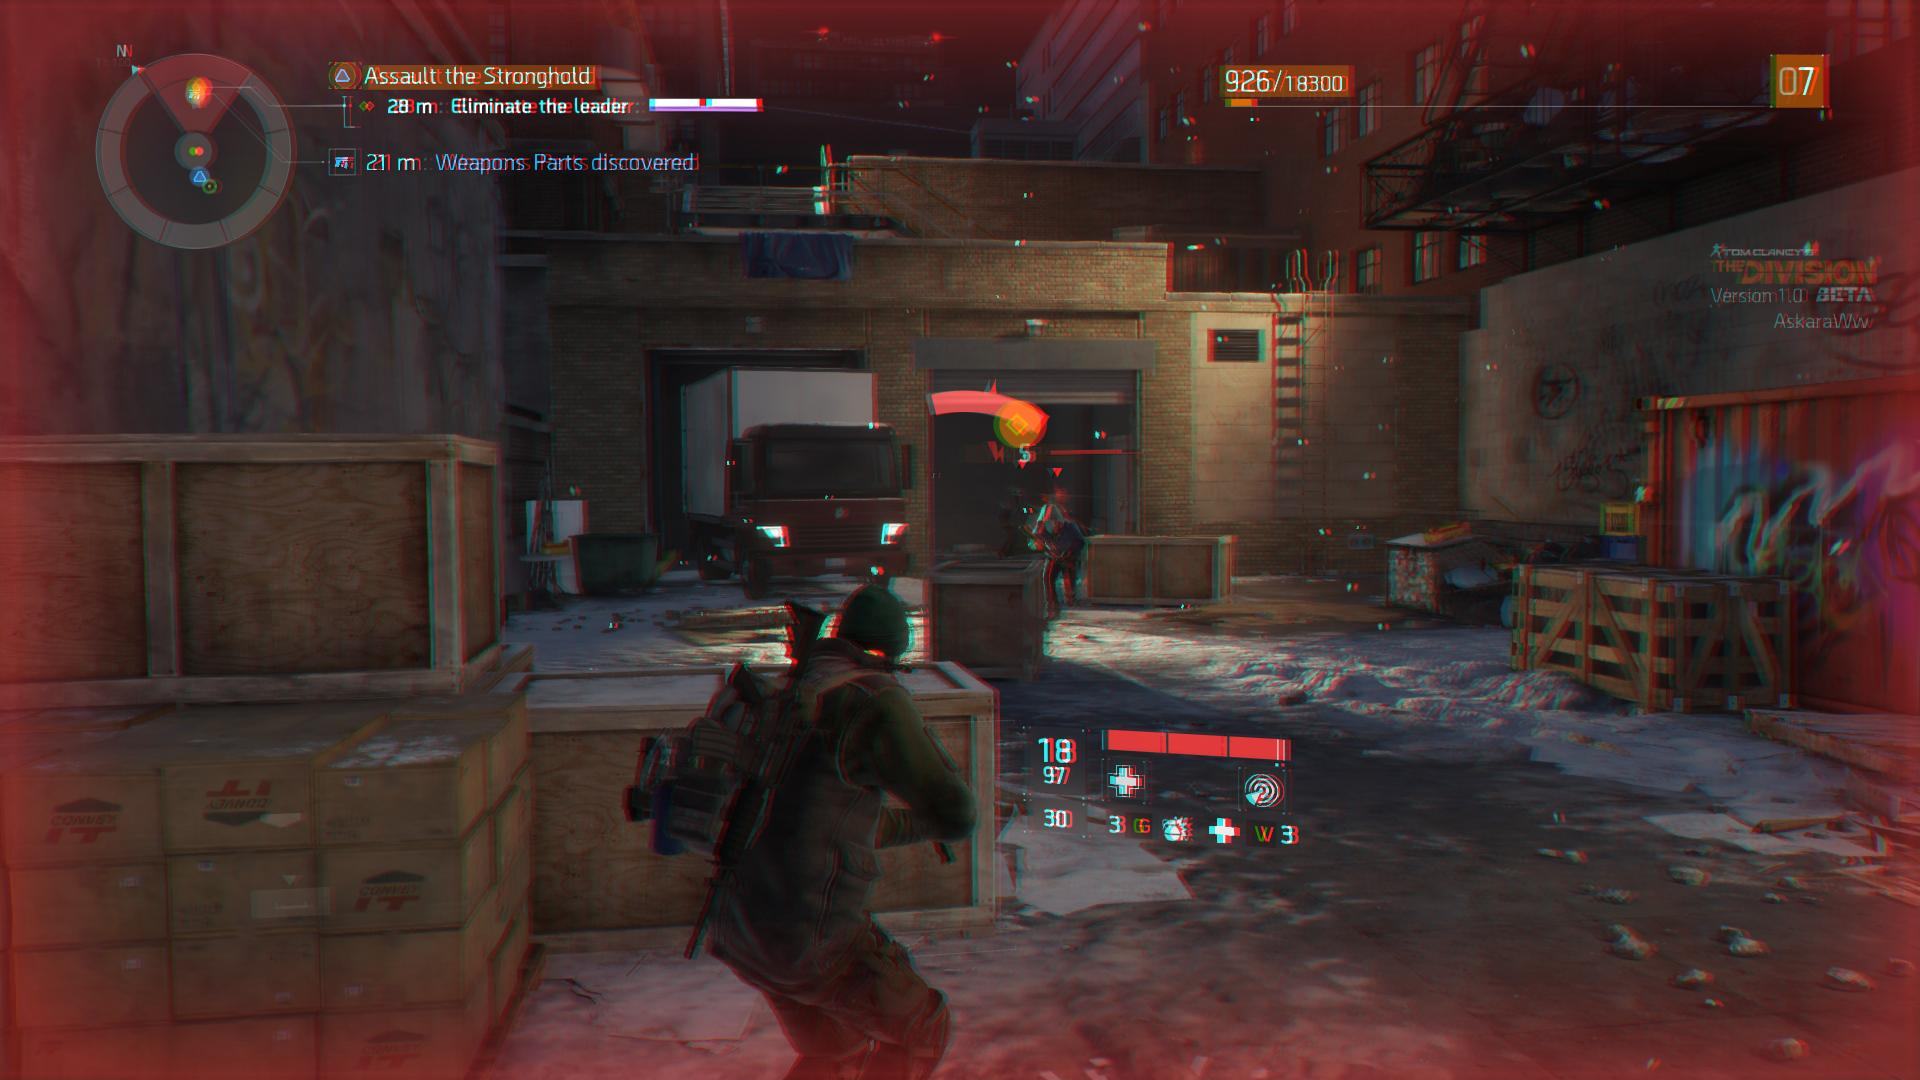 Tom Clancy's The Division Dojmy z Bety (PC) 11204